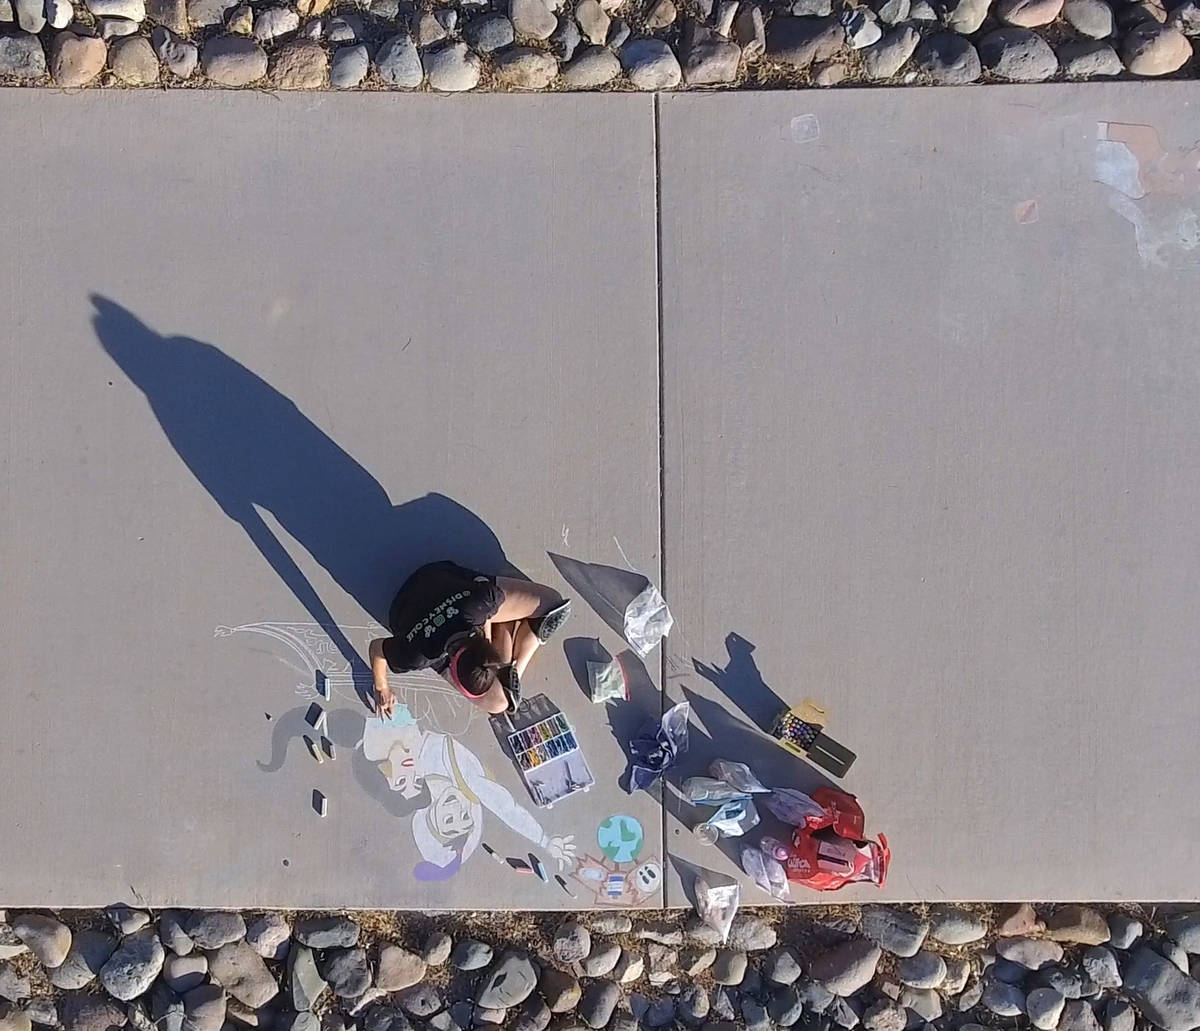 Nicole Cox, of Las Vegas, works on a public chalk drawing on Friday, July 3, 2020, at Nevada Tr ...